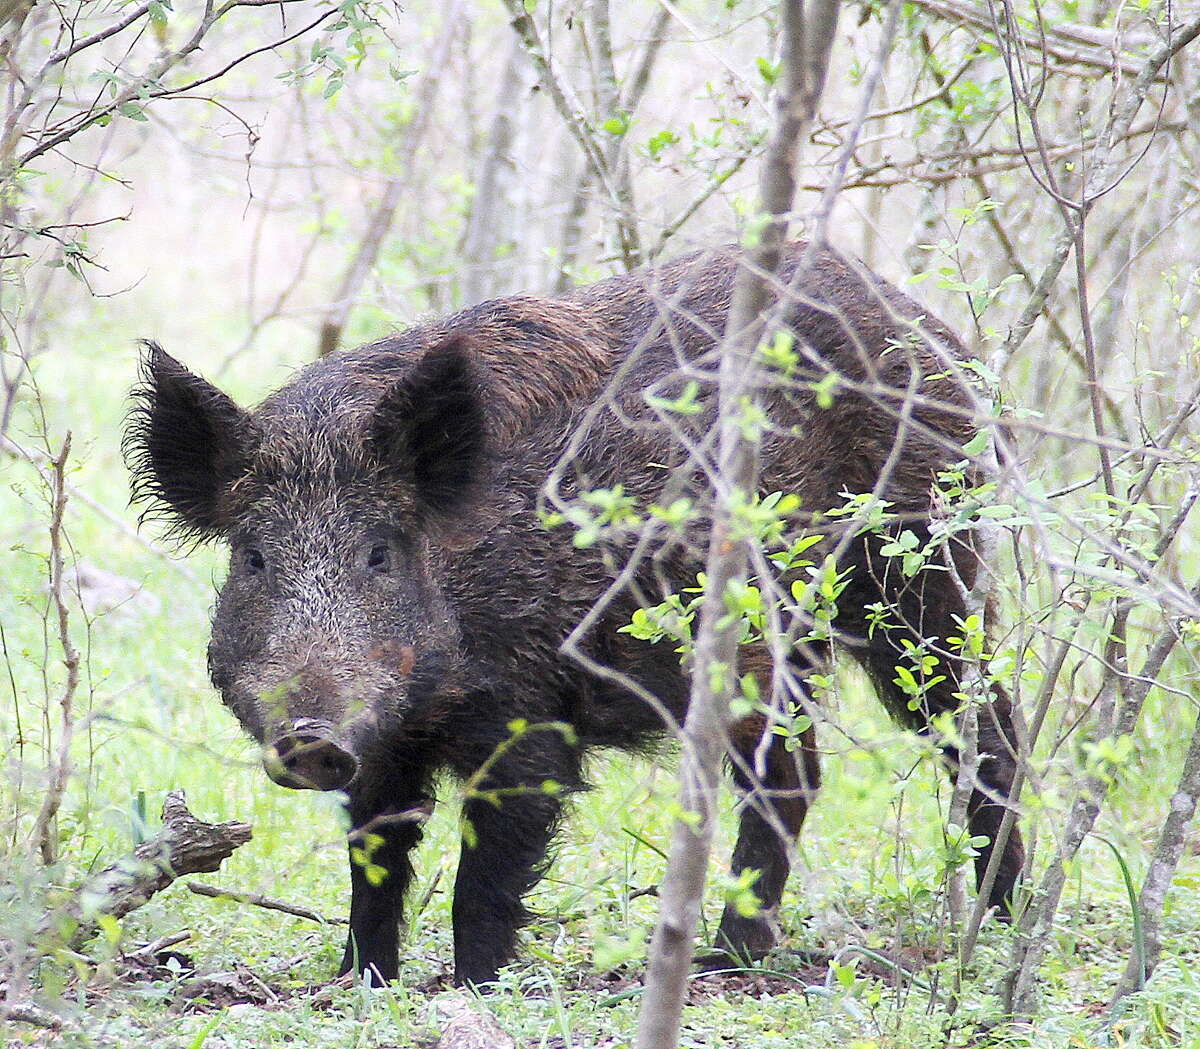 Tails can be brought in during regular business hours (8 a.m. to 12 p.m. and 1 p.m. to 5 p.m.) on Wednesdays.Source:Hays County Feral Hog Bounty Program